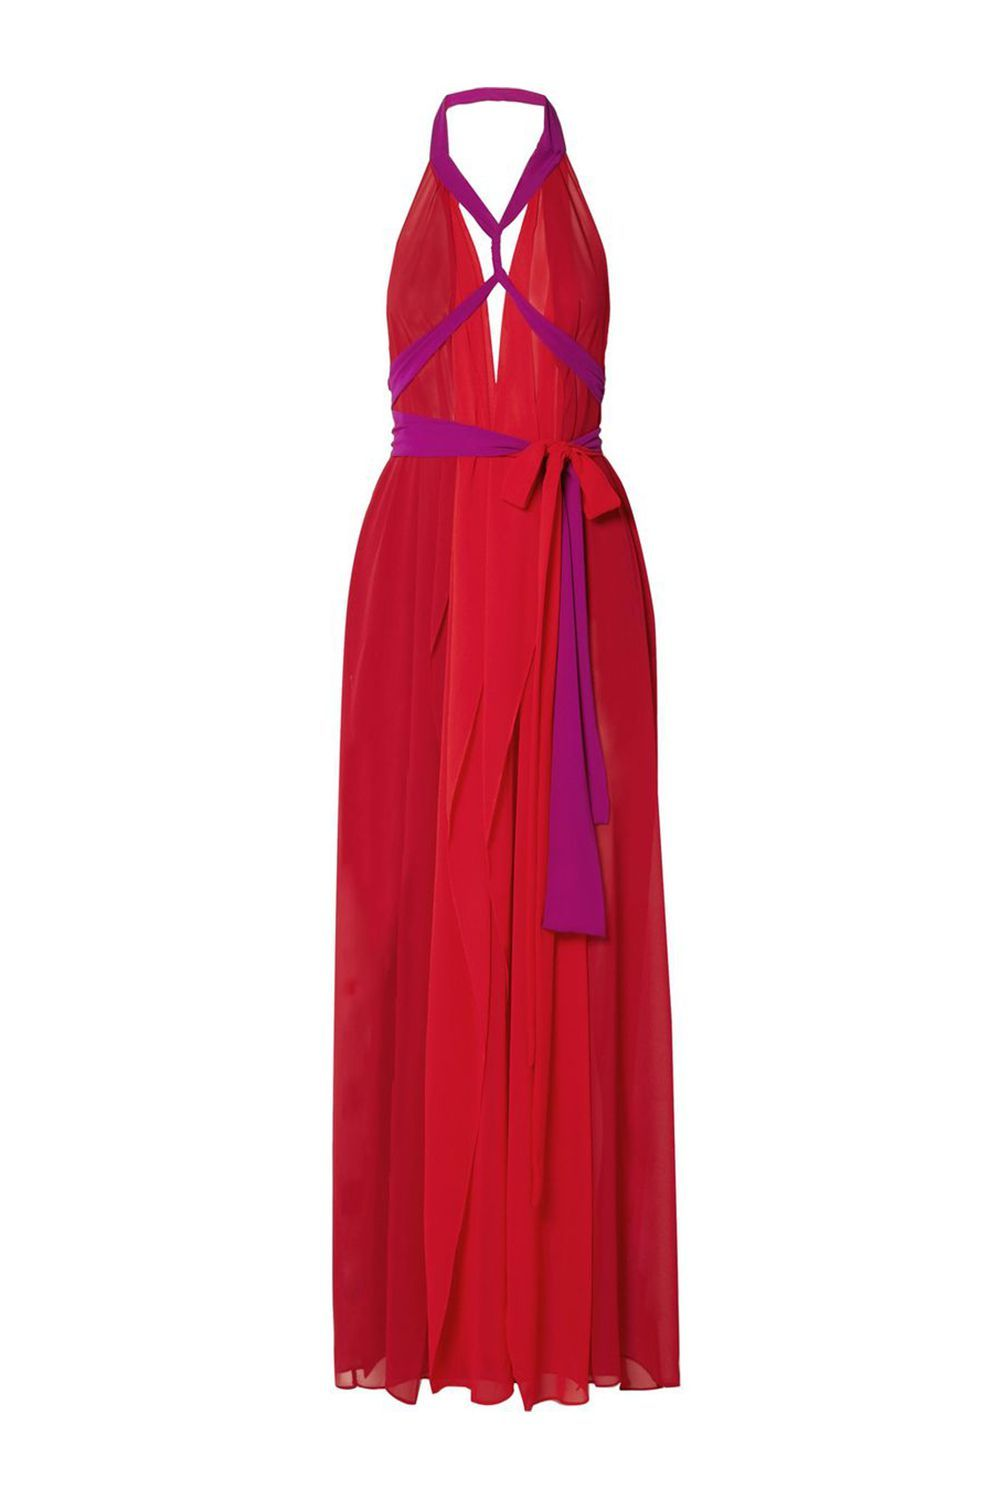 Best for Wearing Multiple Ways Cutout Halterneck Maxi Dress Marika Vera net-a-porter.com $249.00 $149.40 (40% off) SHOP IT This red-hot gown can be styled and re-style to your heart's desire, thanks to the customizable halter neck. It'll feel like a new dress every time you wear it!